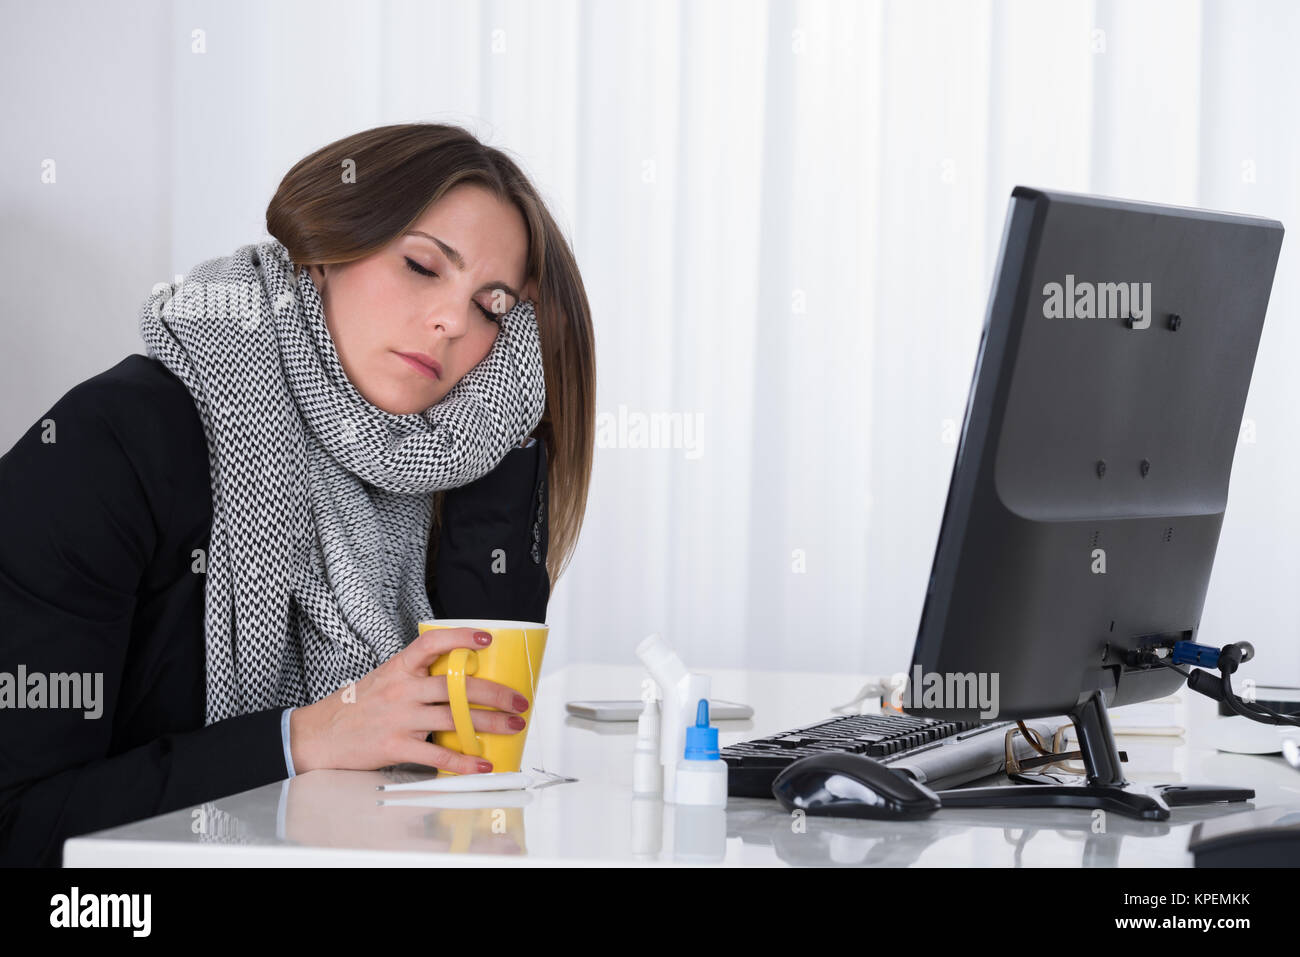 Businesswoman With Cup At Desk - Stock Image